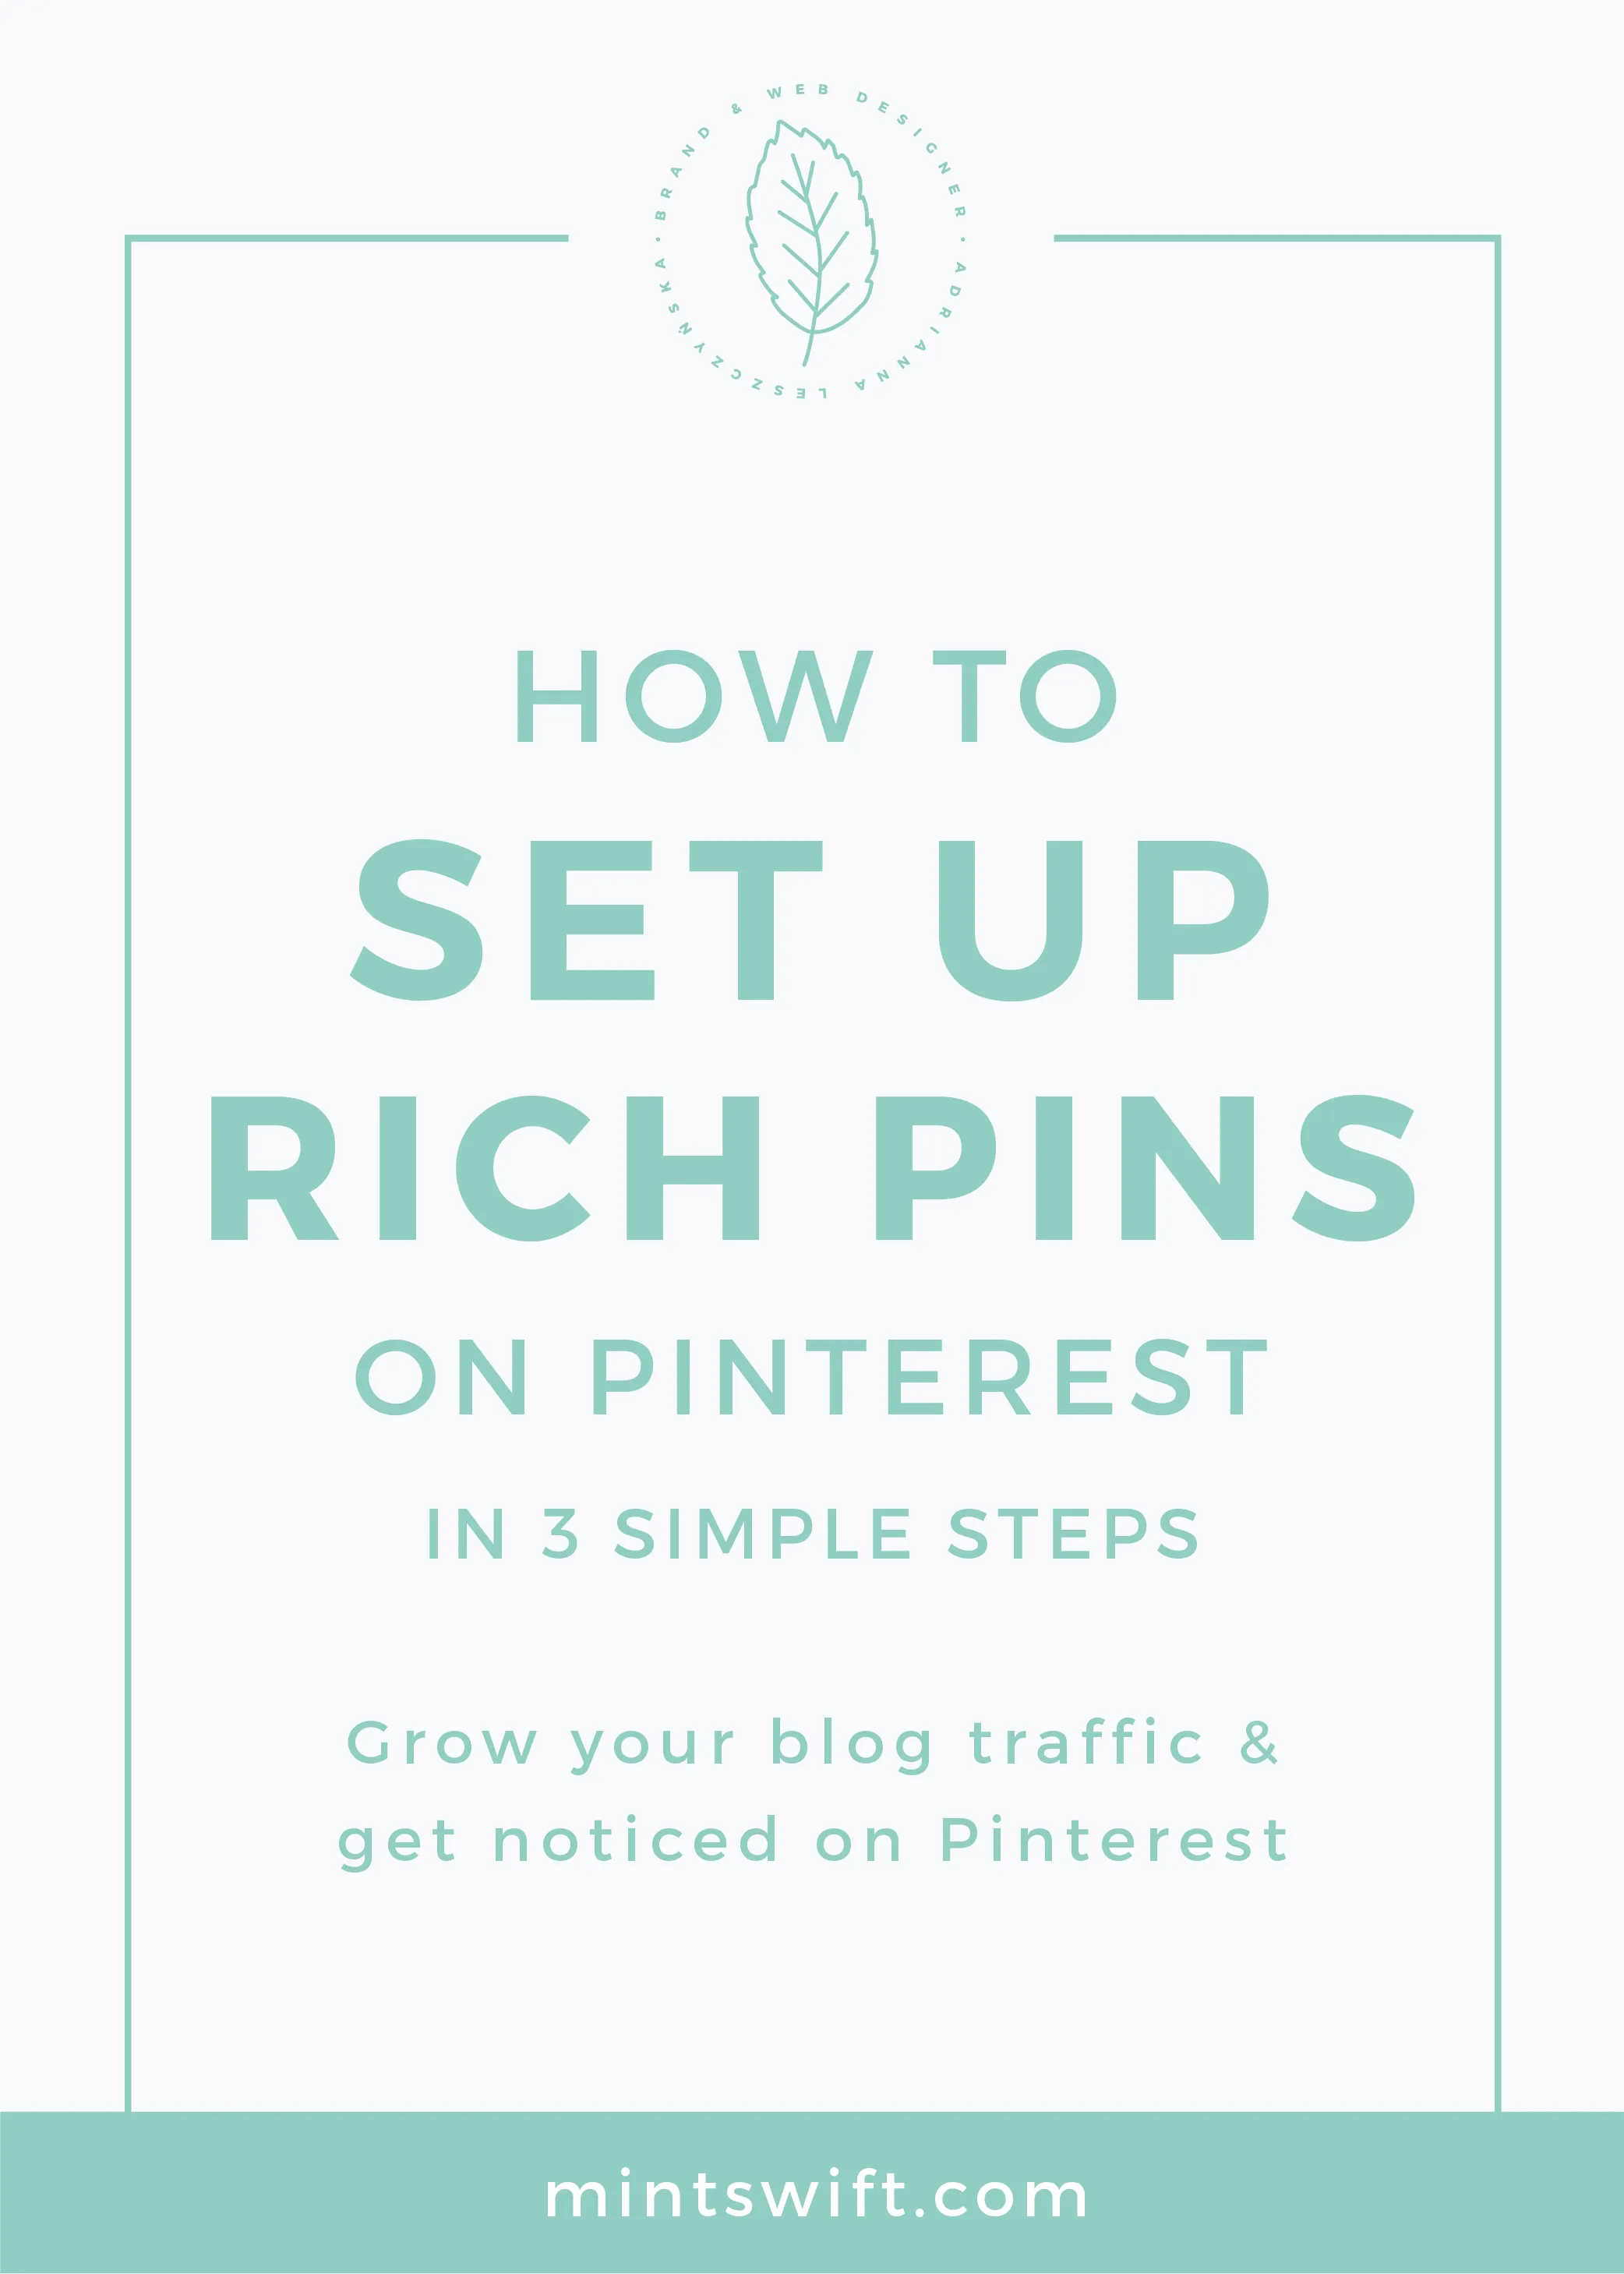 How to Set Up Rich Pins on Pinterest in 3 Simple Steps. Grow Your Blog Traffic & Get Noticed on Pinterest MintSwift